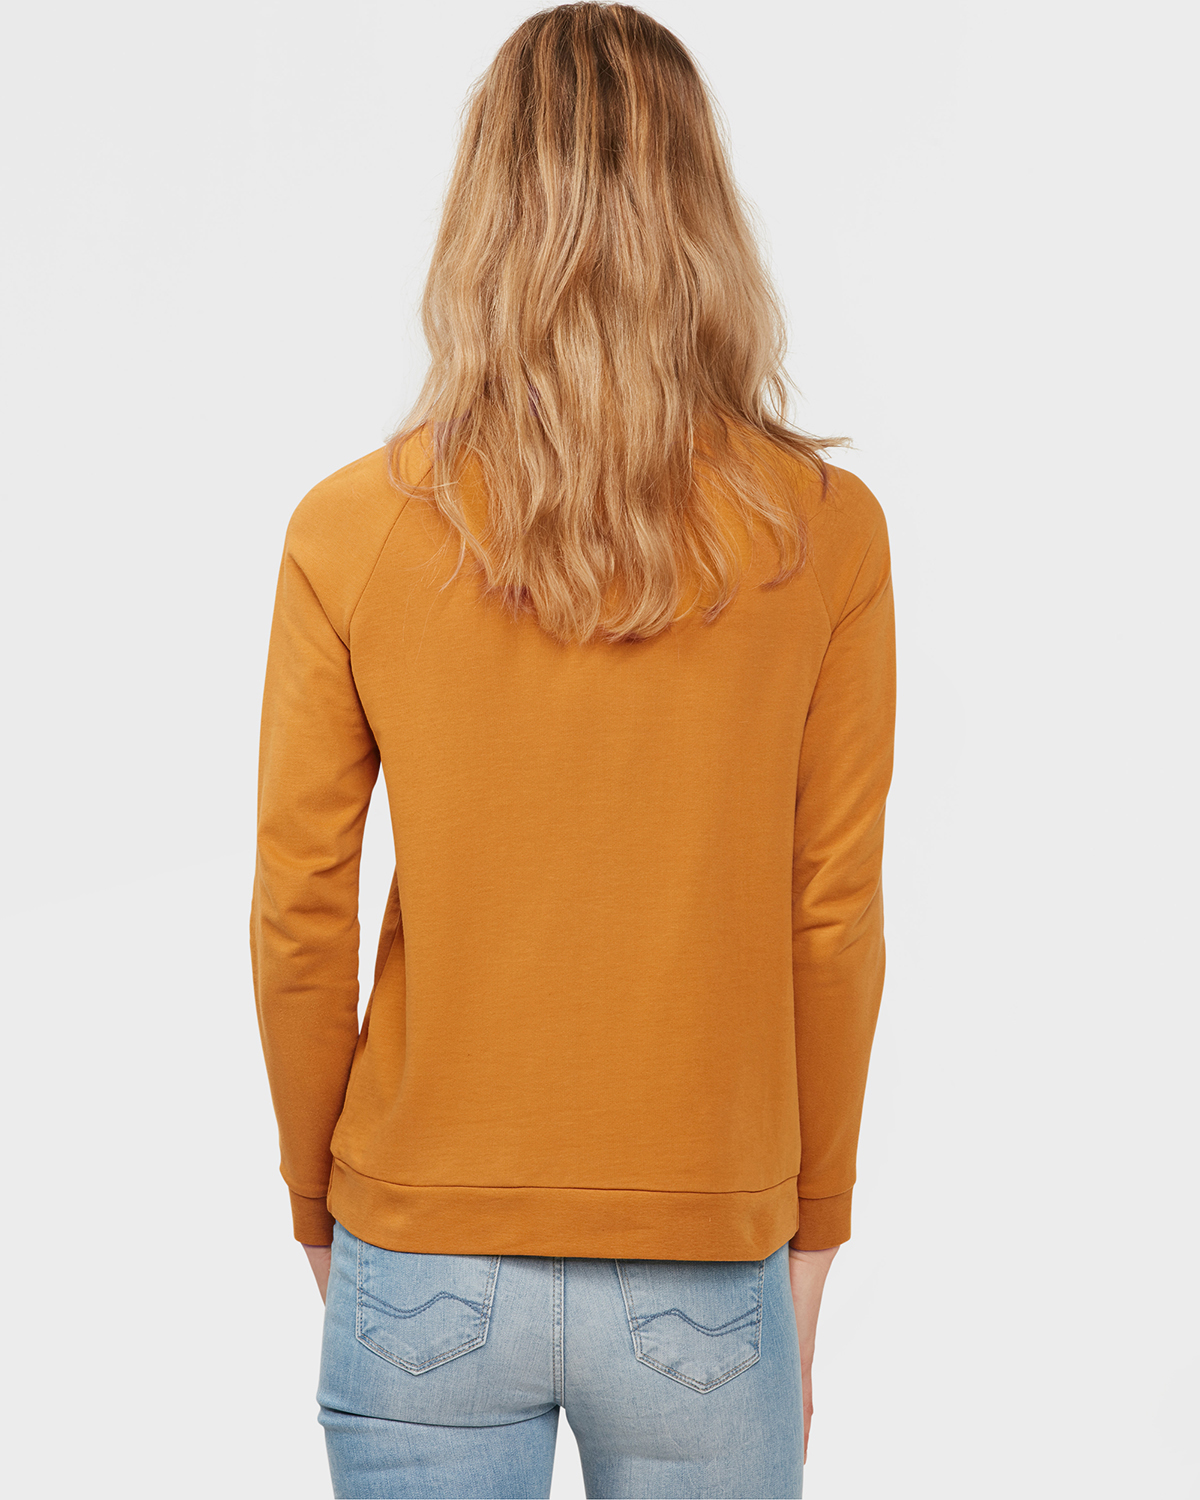 ... DAMES GOLD SWEATER Mosterdgeel ... 9f1ab9547